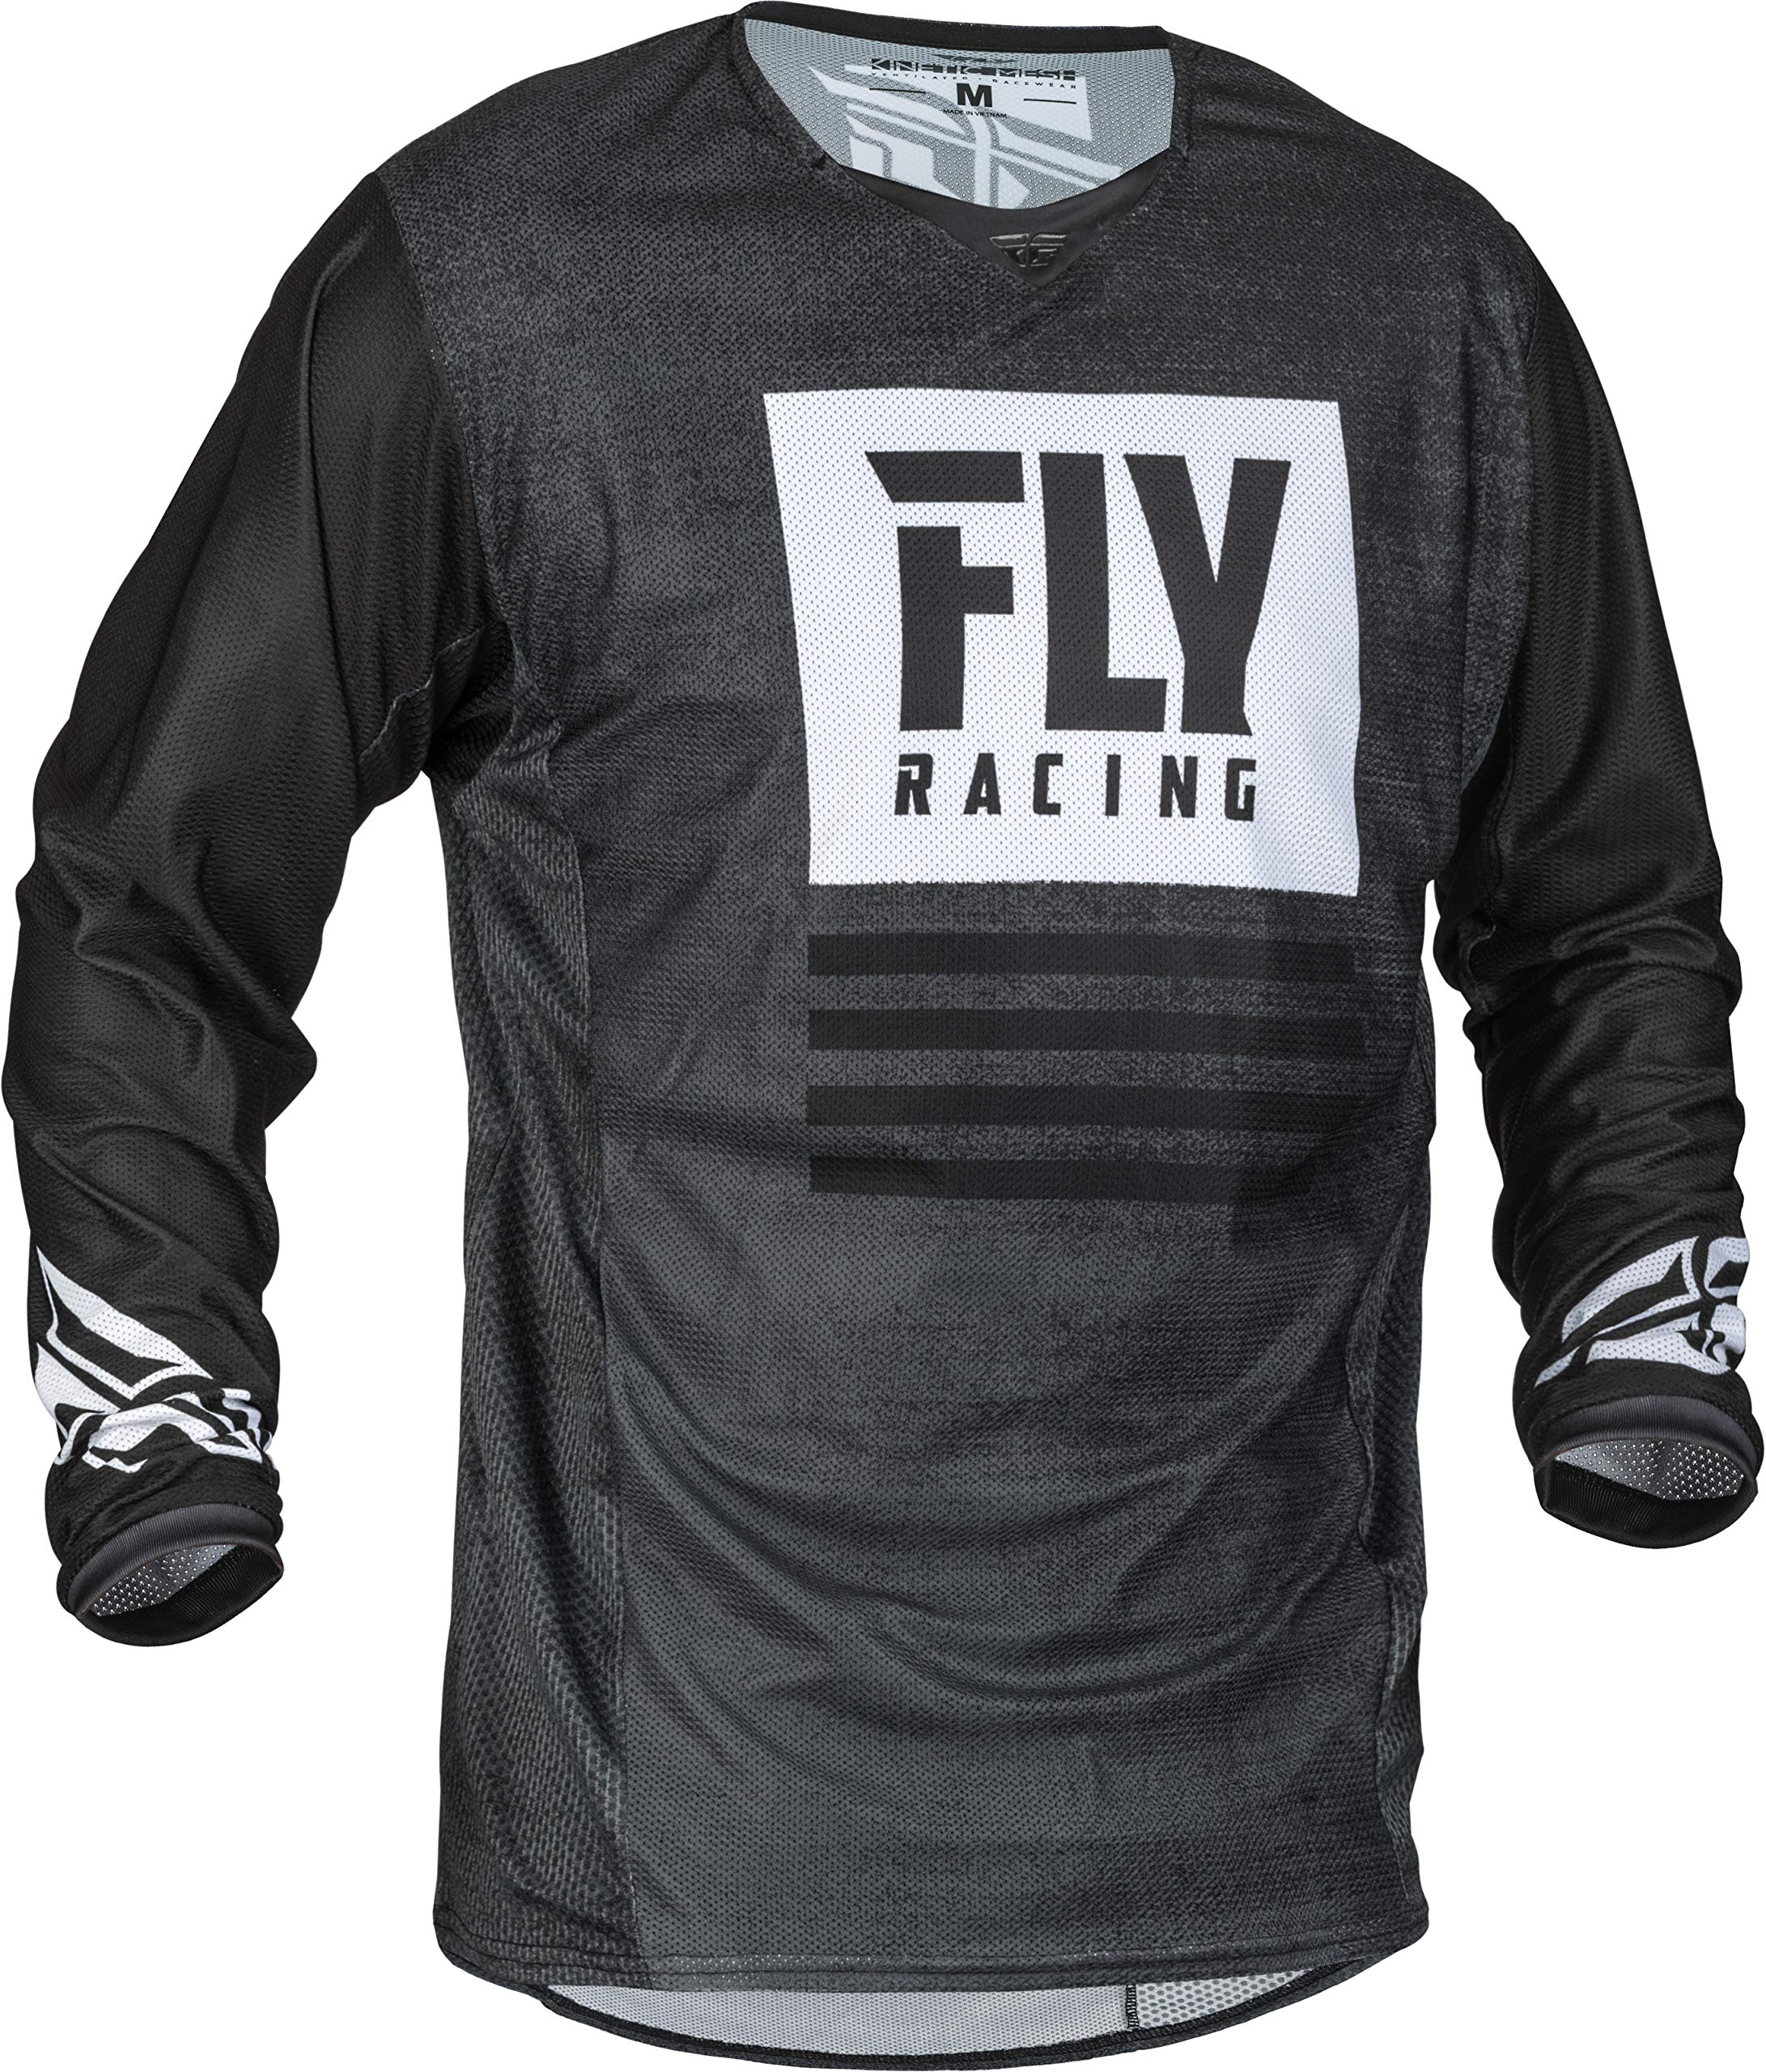 Fly Racing 2019 Kinetic Mesh Men's Motocross Gear Combo (Black/White) (2XLarge/36'' Waist)